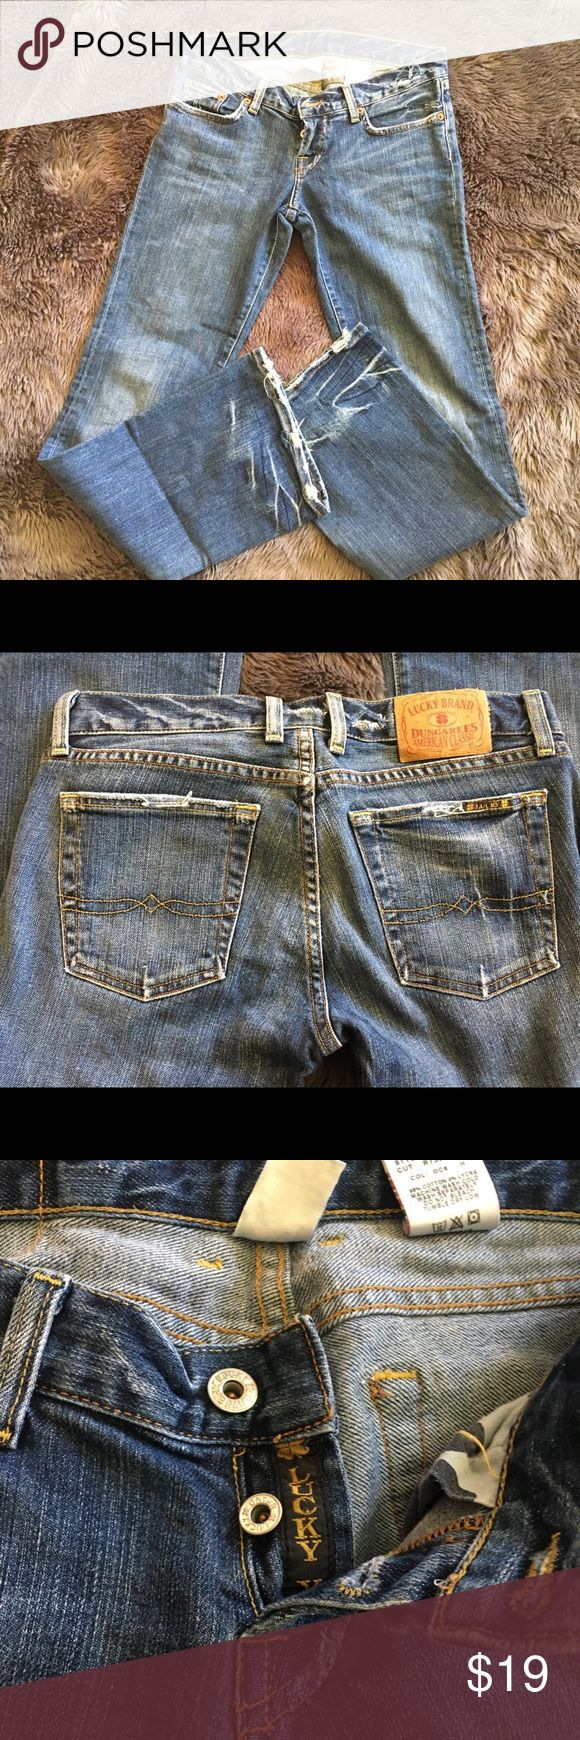 Lucky Brand dungaree jeans size 4 Lucky brand dungaree jeans. Size 4. Gently used. Button fly with boot cut. Great condition 😃 First photo shows them a bit lighter than they actually are. Bottom two photos are more accurate. Lucky Brand Jeans Boot Cut